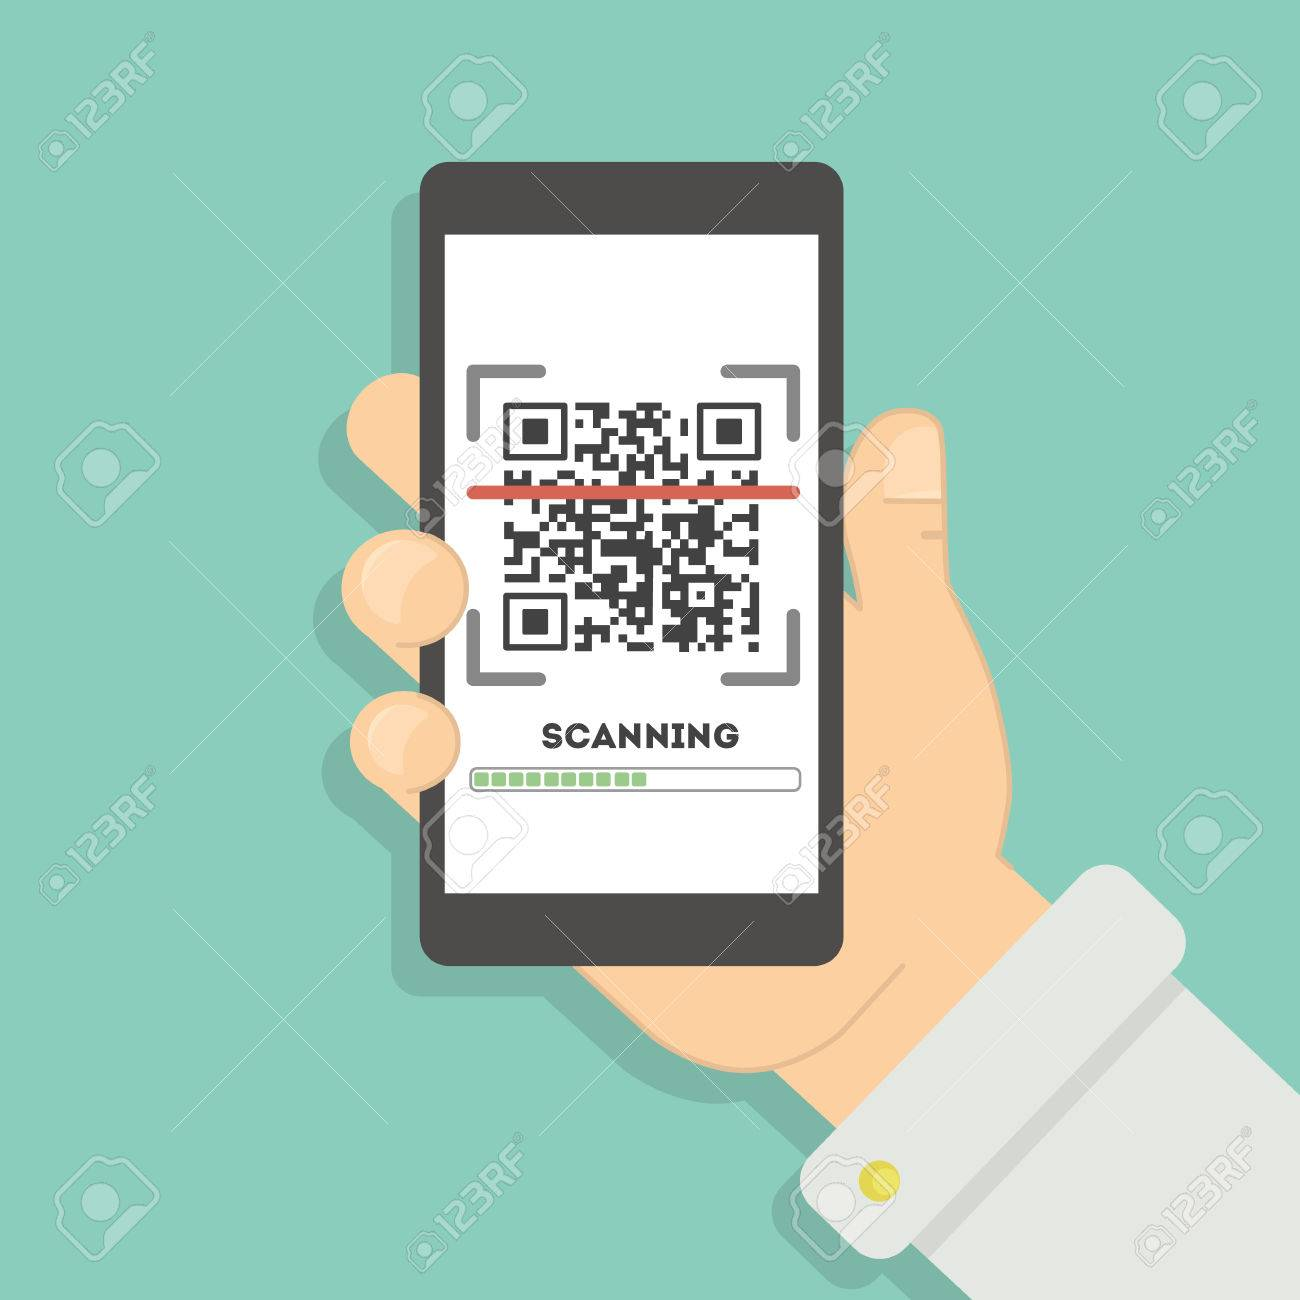 Scanning qr code with smartphone  Mobile scan app for reading